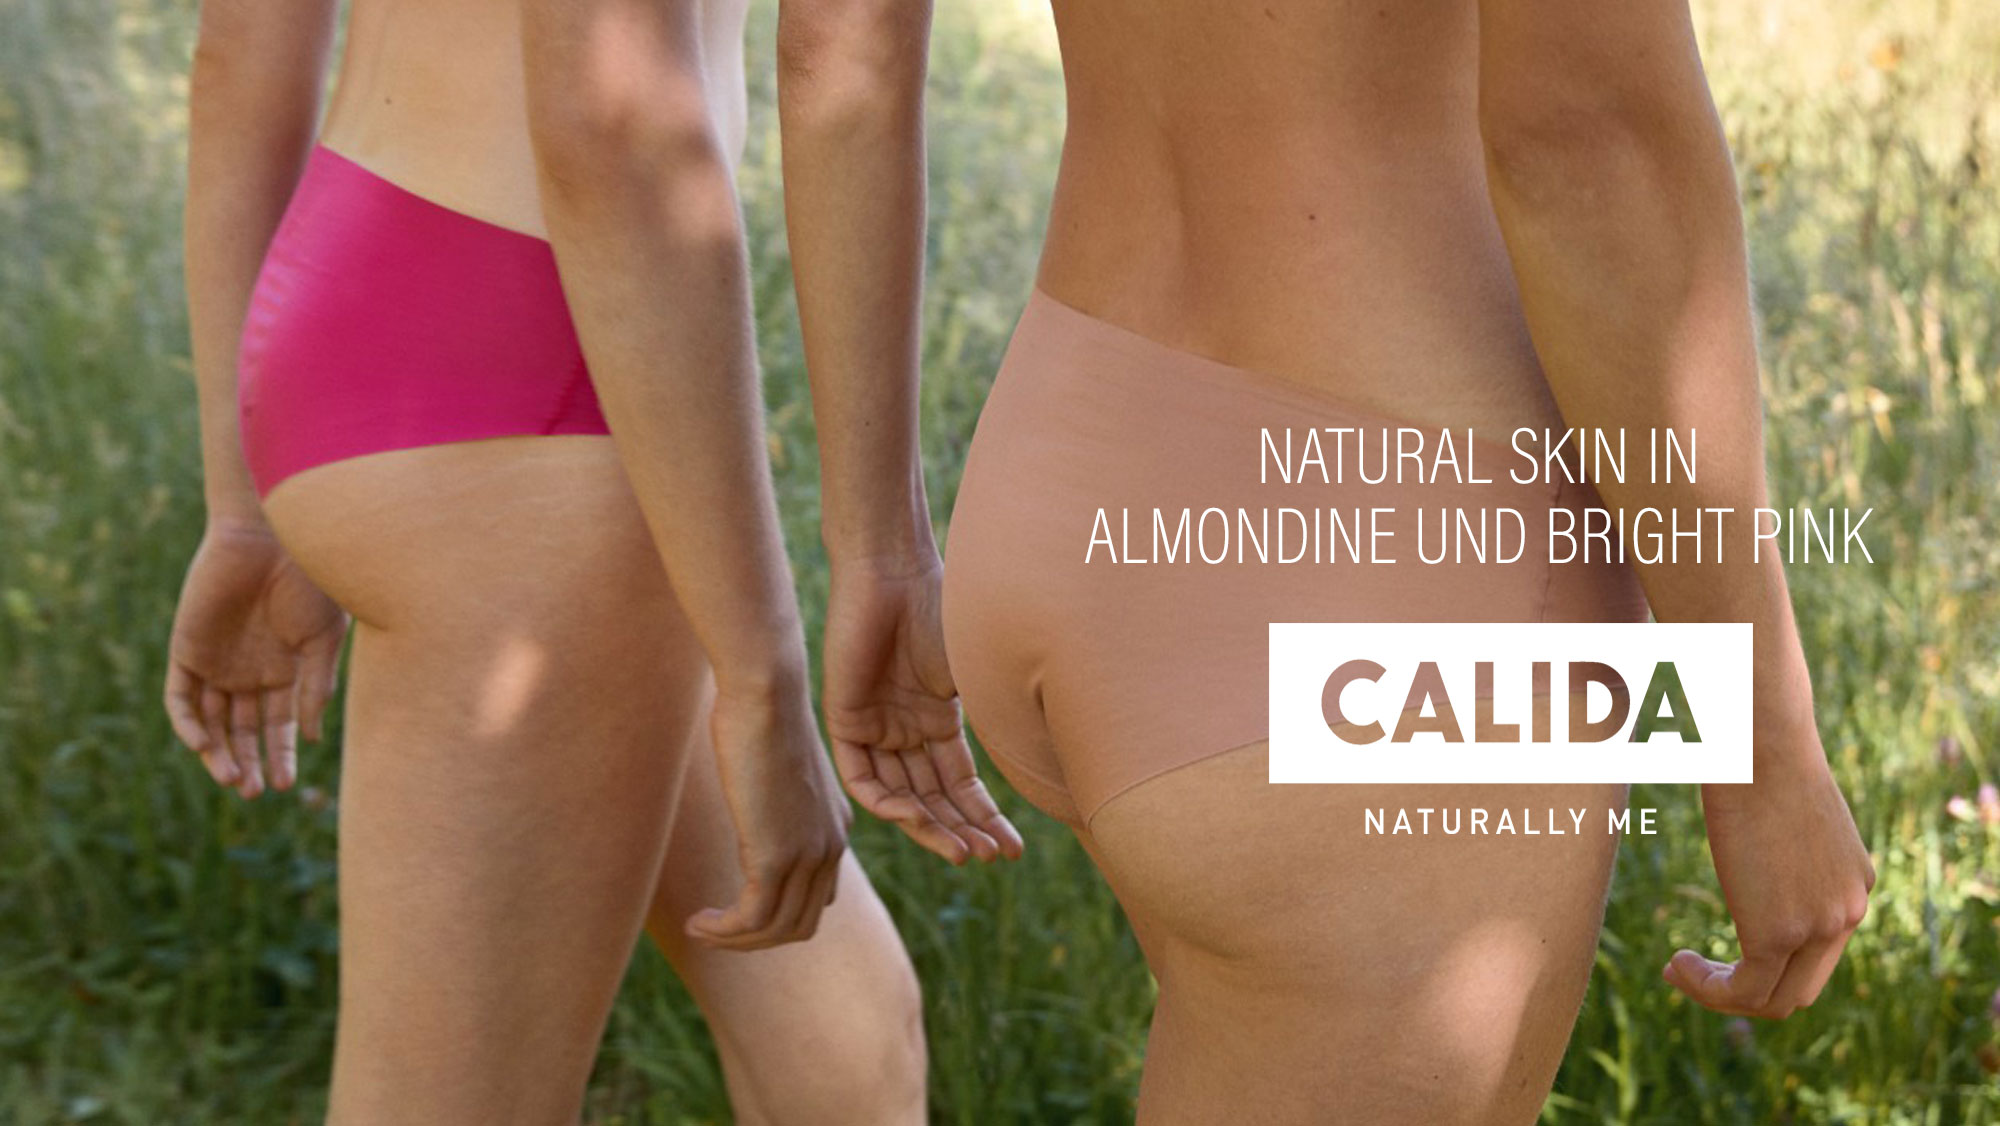 Calida Natural Skin